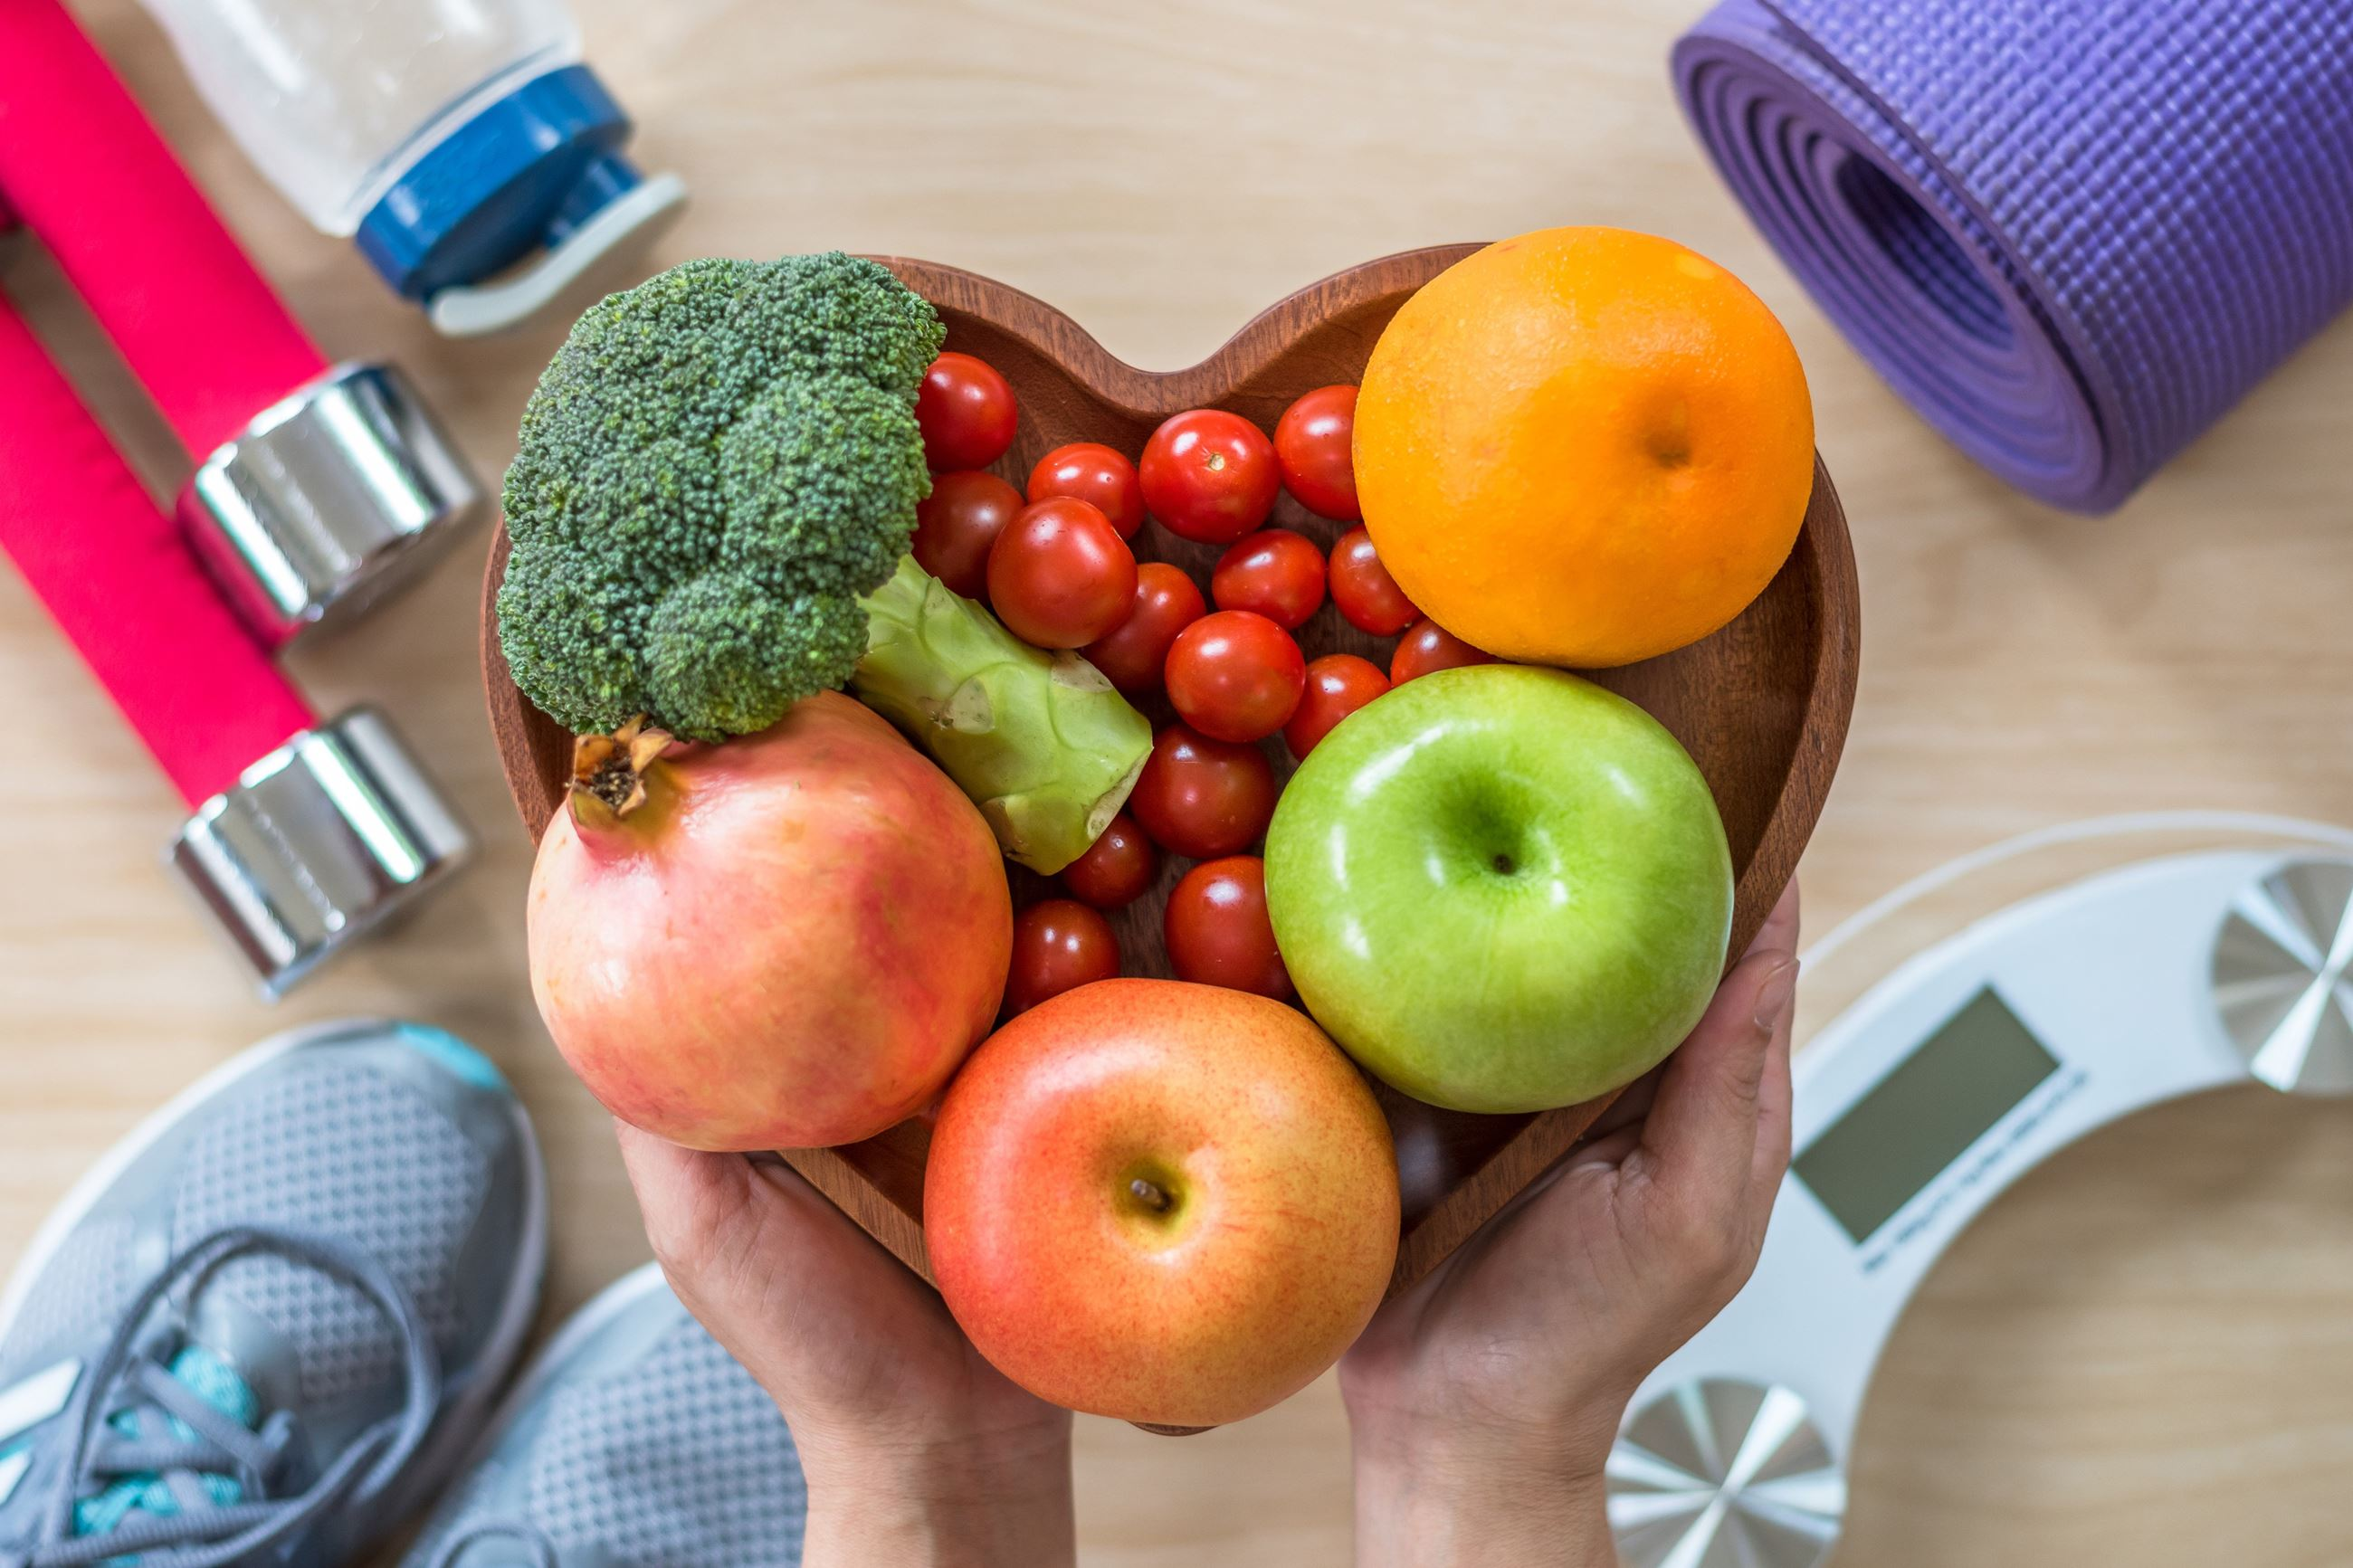 Workout equipment, fruit, and vegetables